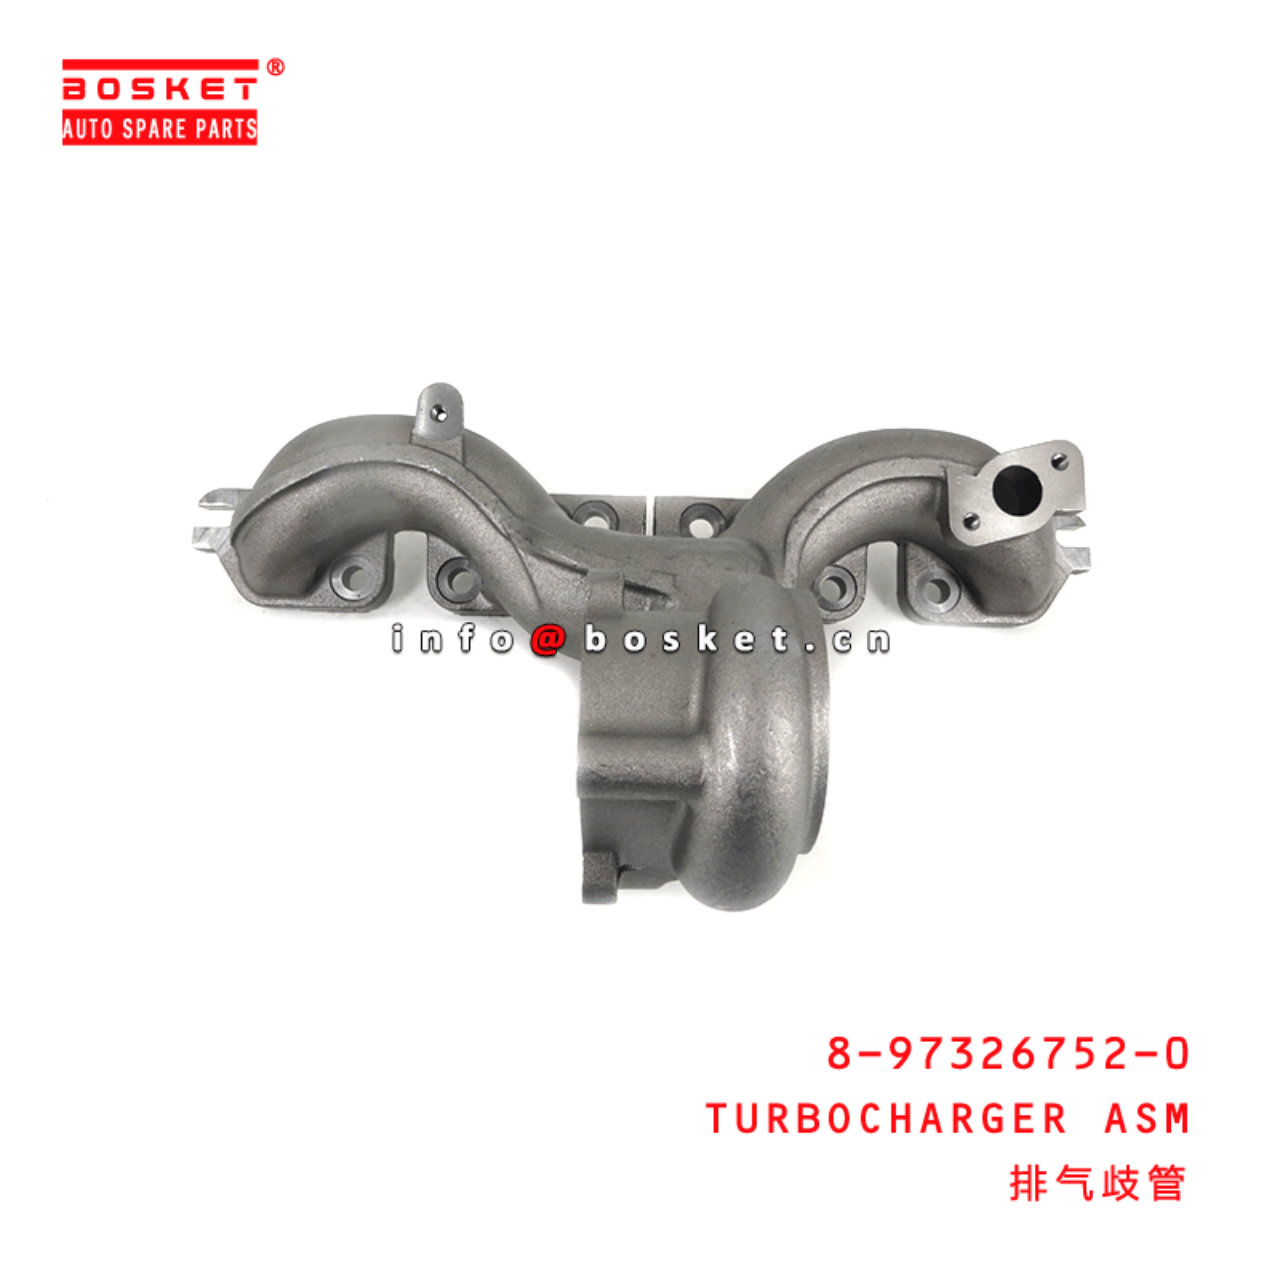 8-97326752-0 Turbocharger Assembly 8973267520 Suitable for ISUZU NKR NPR 4HG1